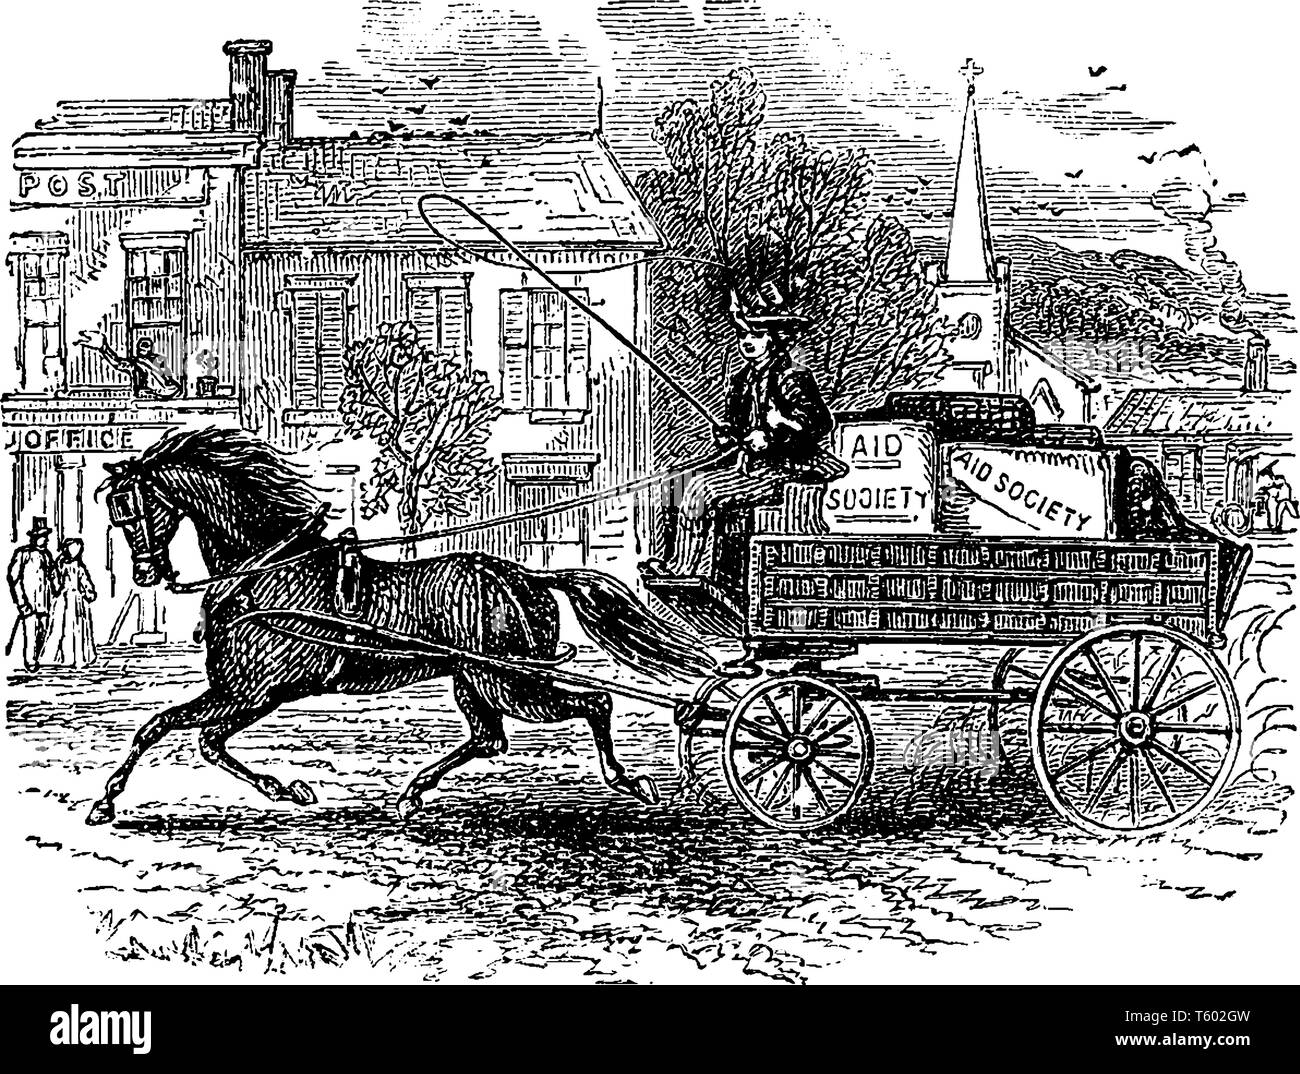 Carriage Horse Where A Woman Driving A Horse And Carriage Vintage Line Drawing Or Engraving Illustration Stock Vector Image Art Alamy